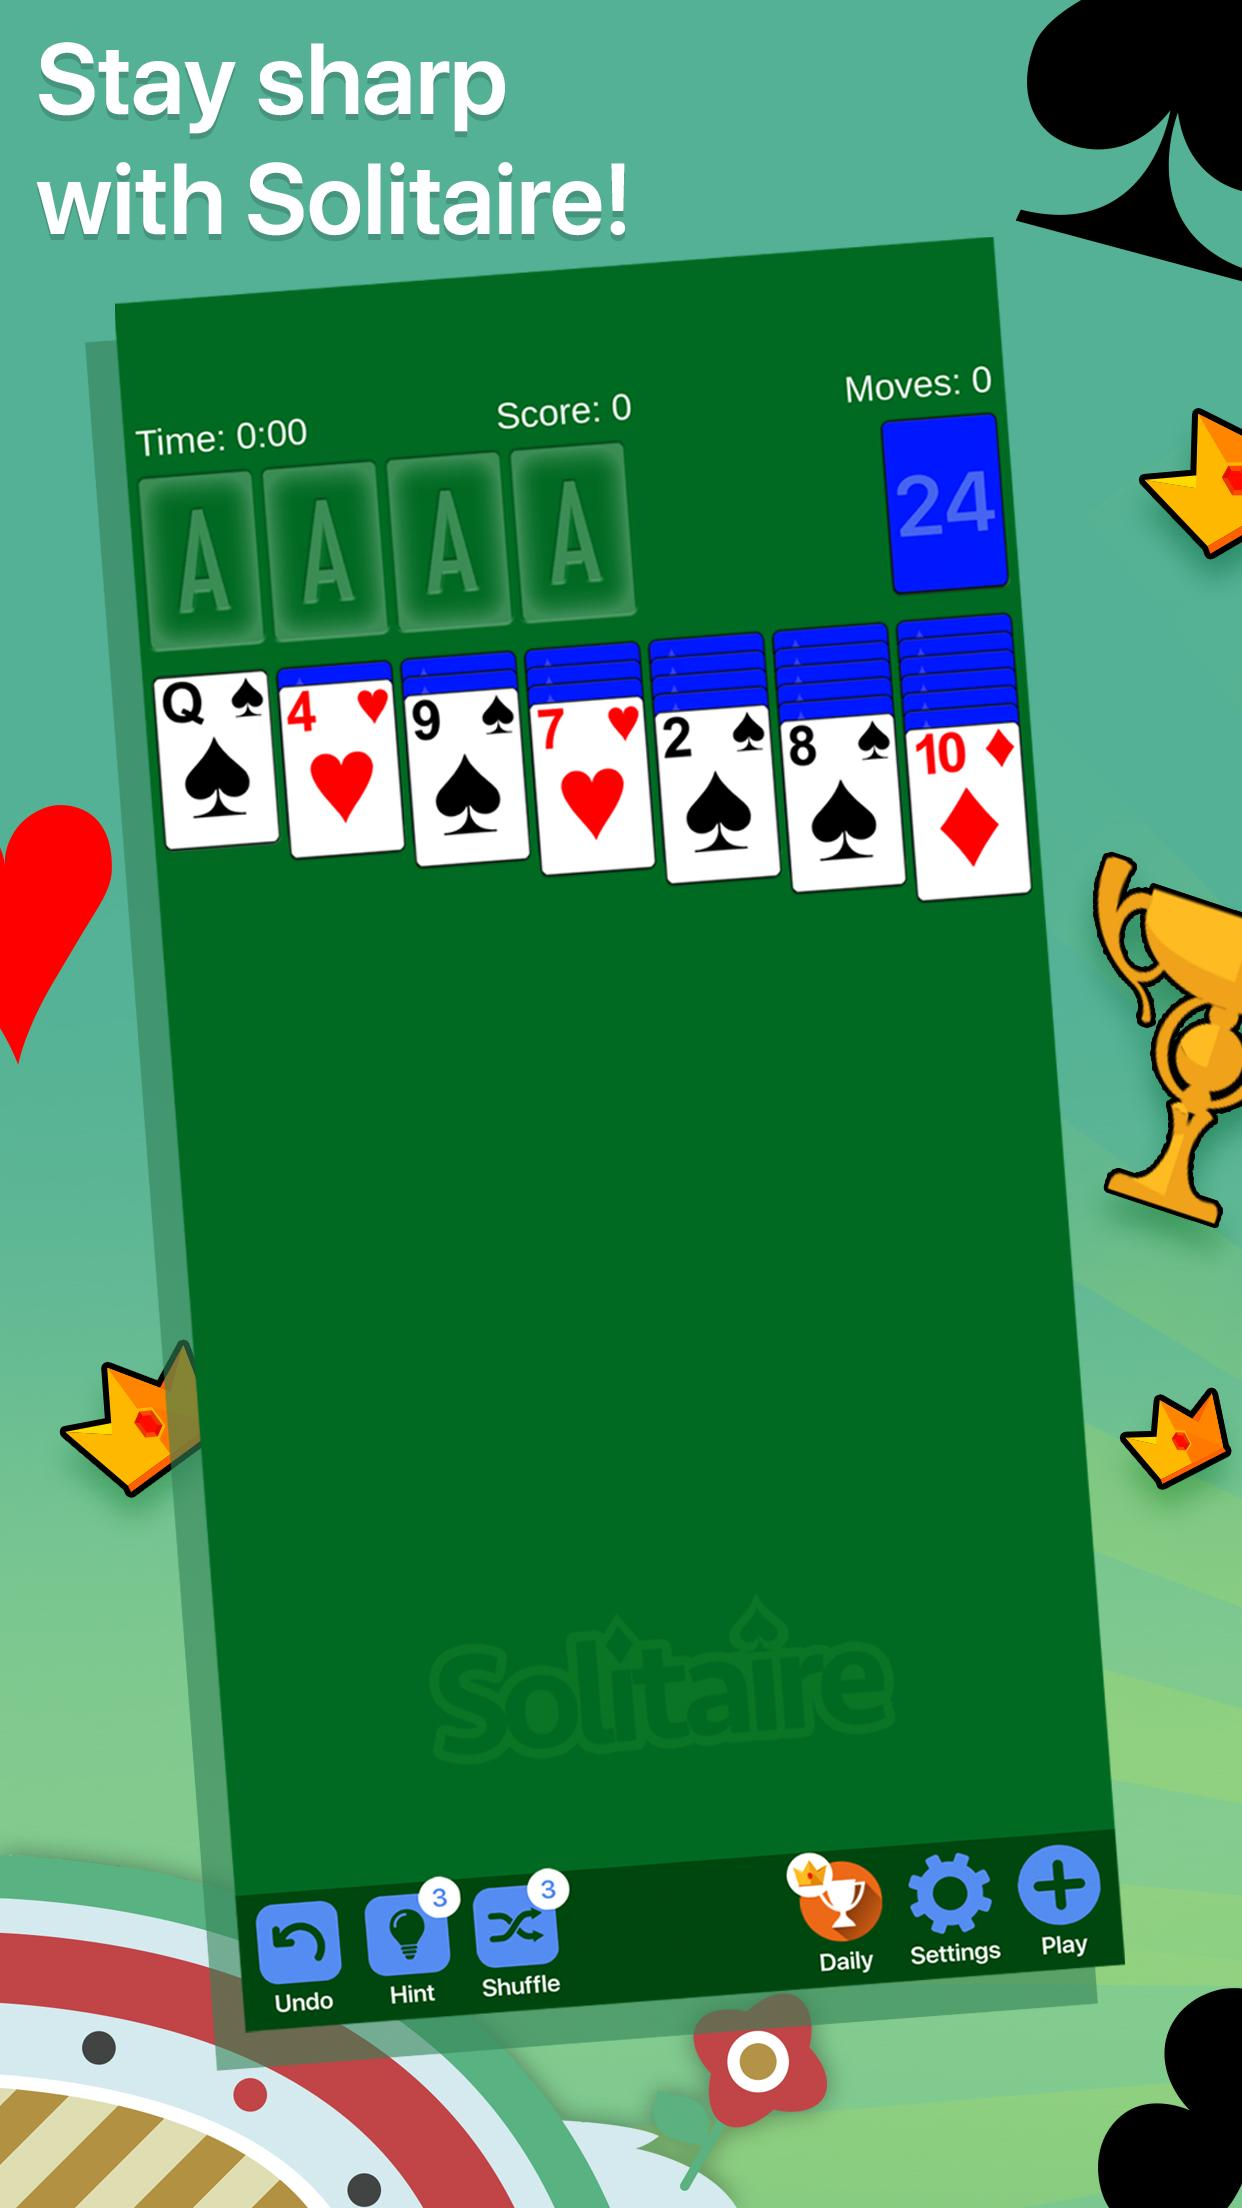 Solitaire 8.4.1 Screenshot 15